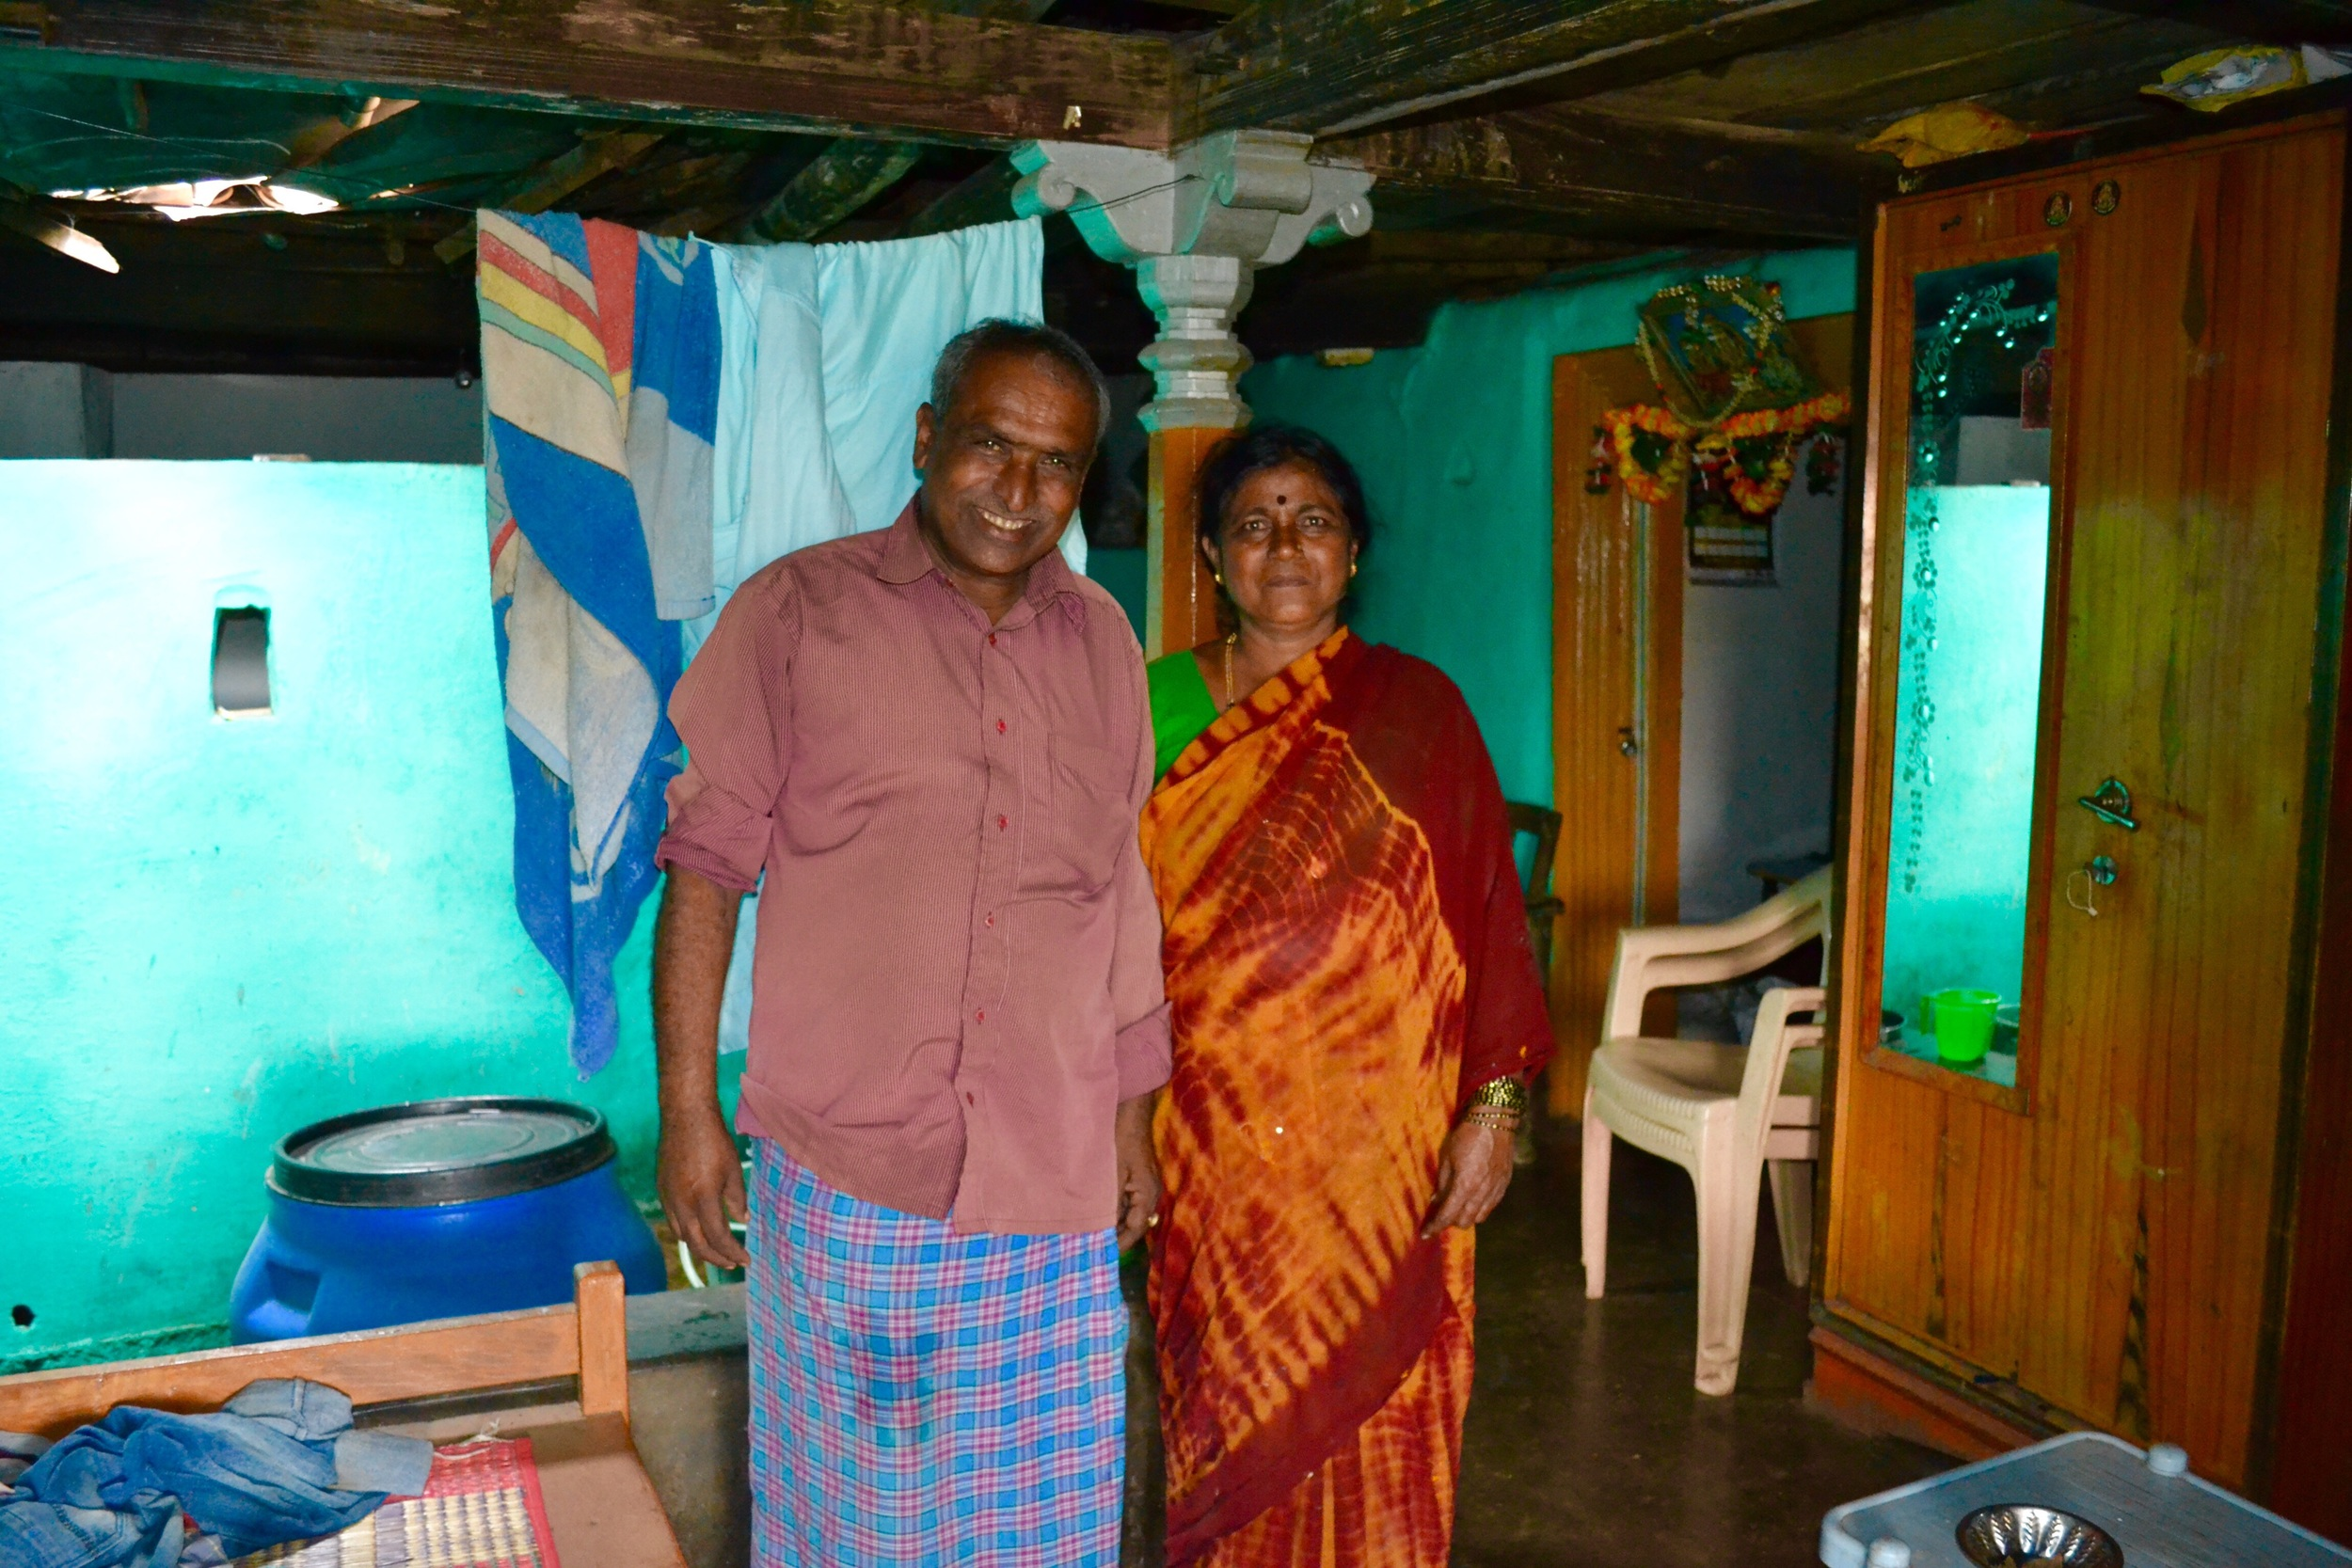 The legend who invited me into his home - the lady on the left is who I almost sat on